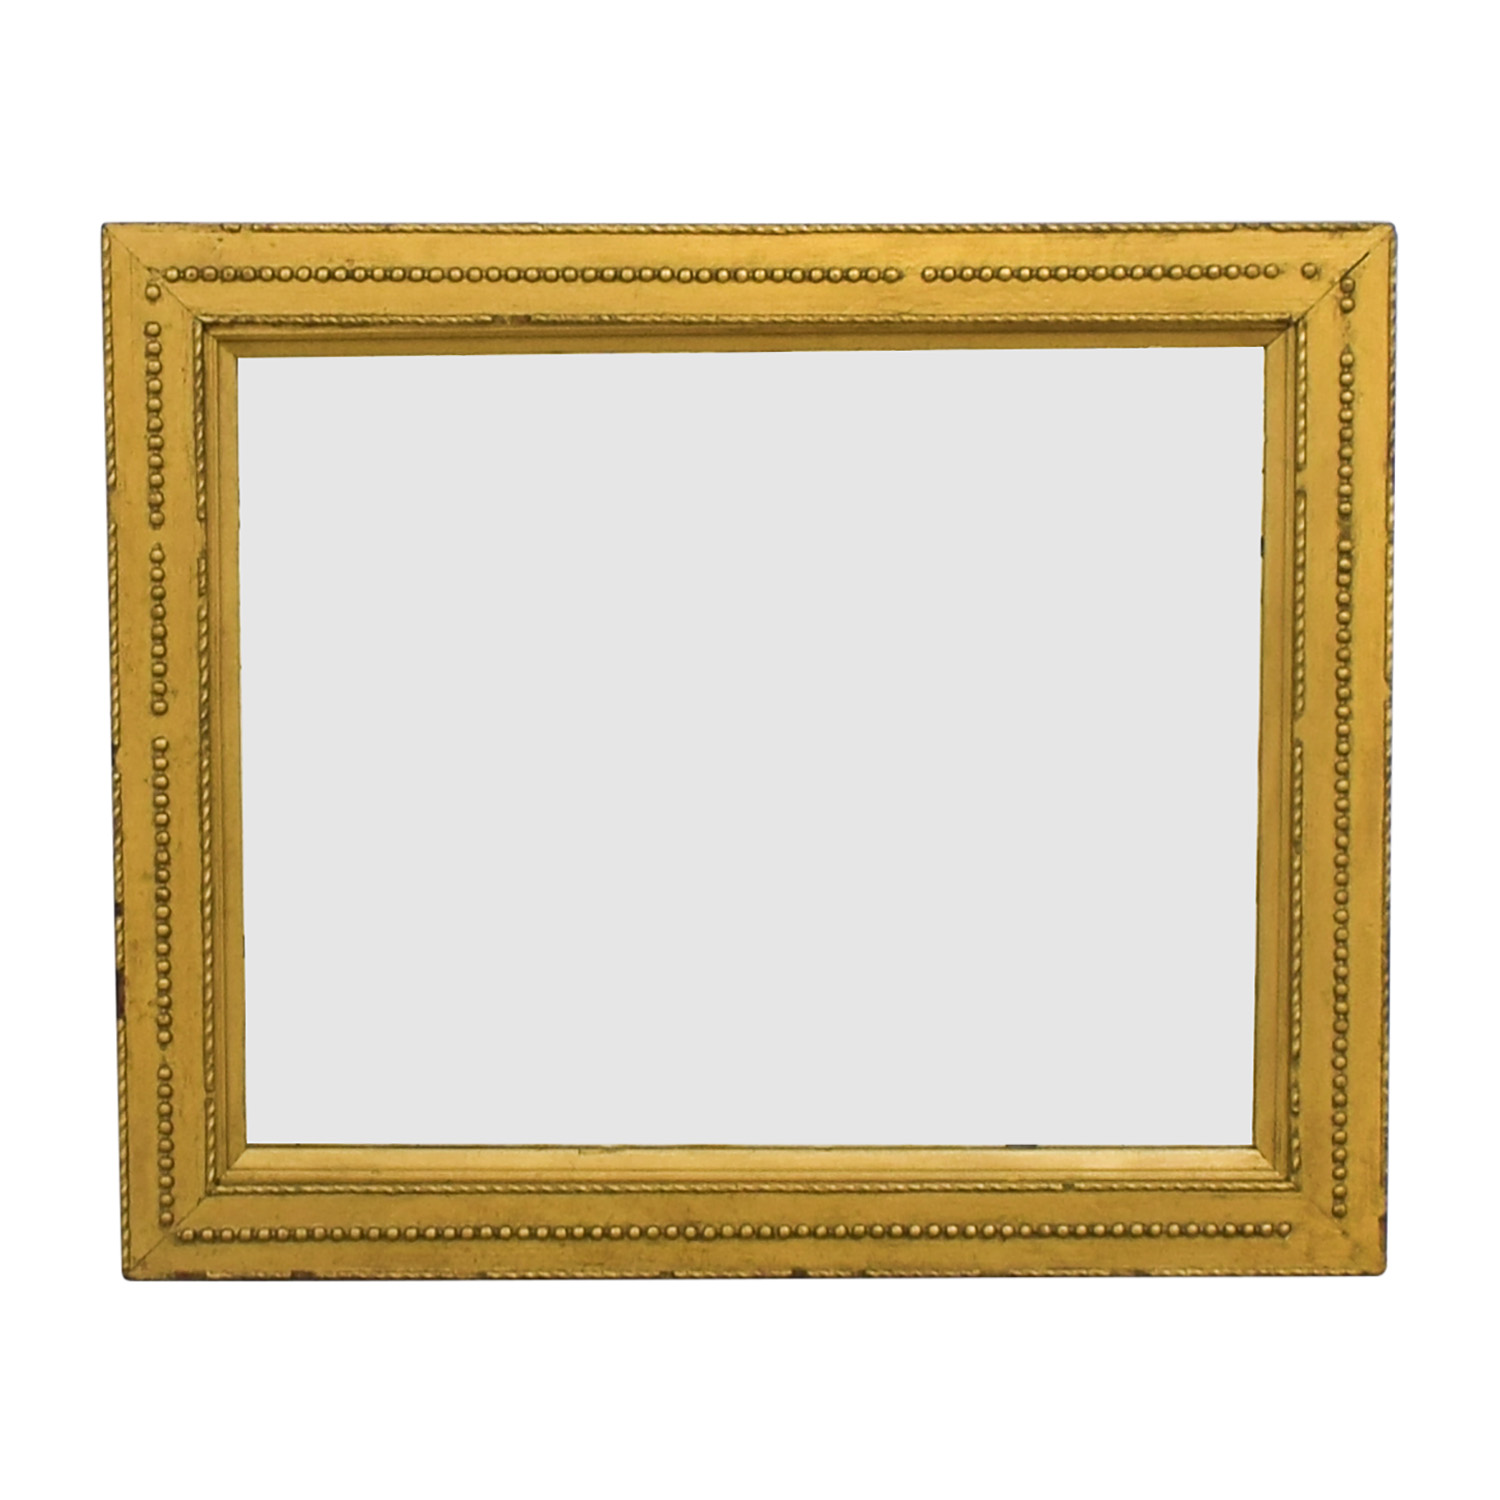 Rustic Gold Framed Mirror sale